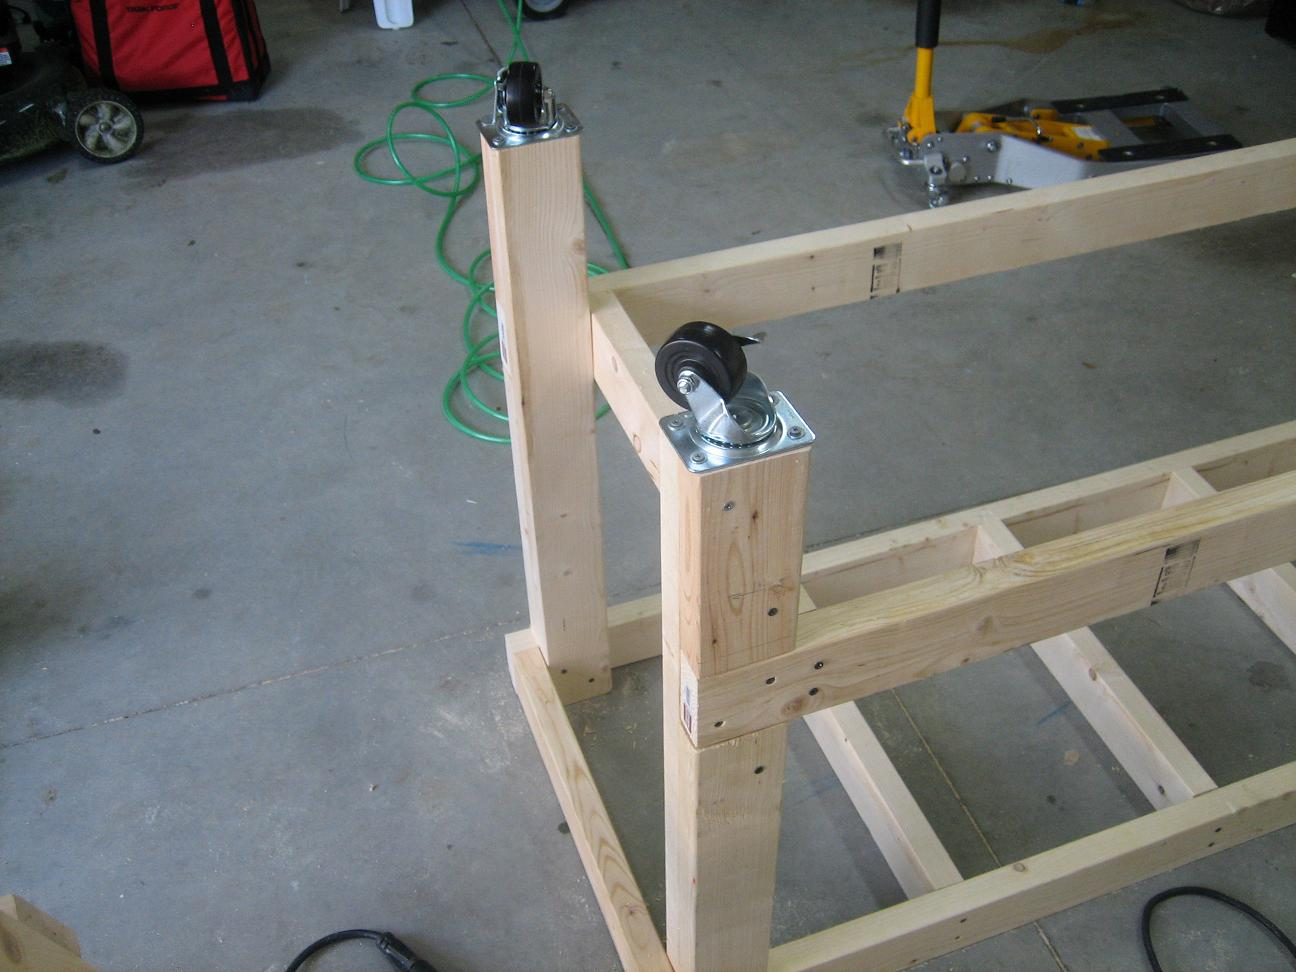 What are some free plans for a garage workbench?